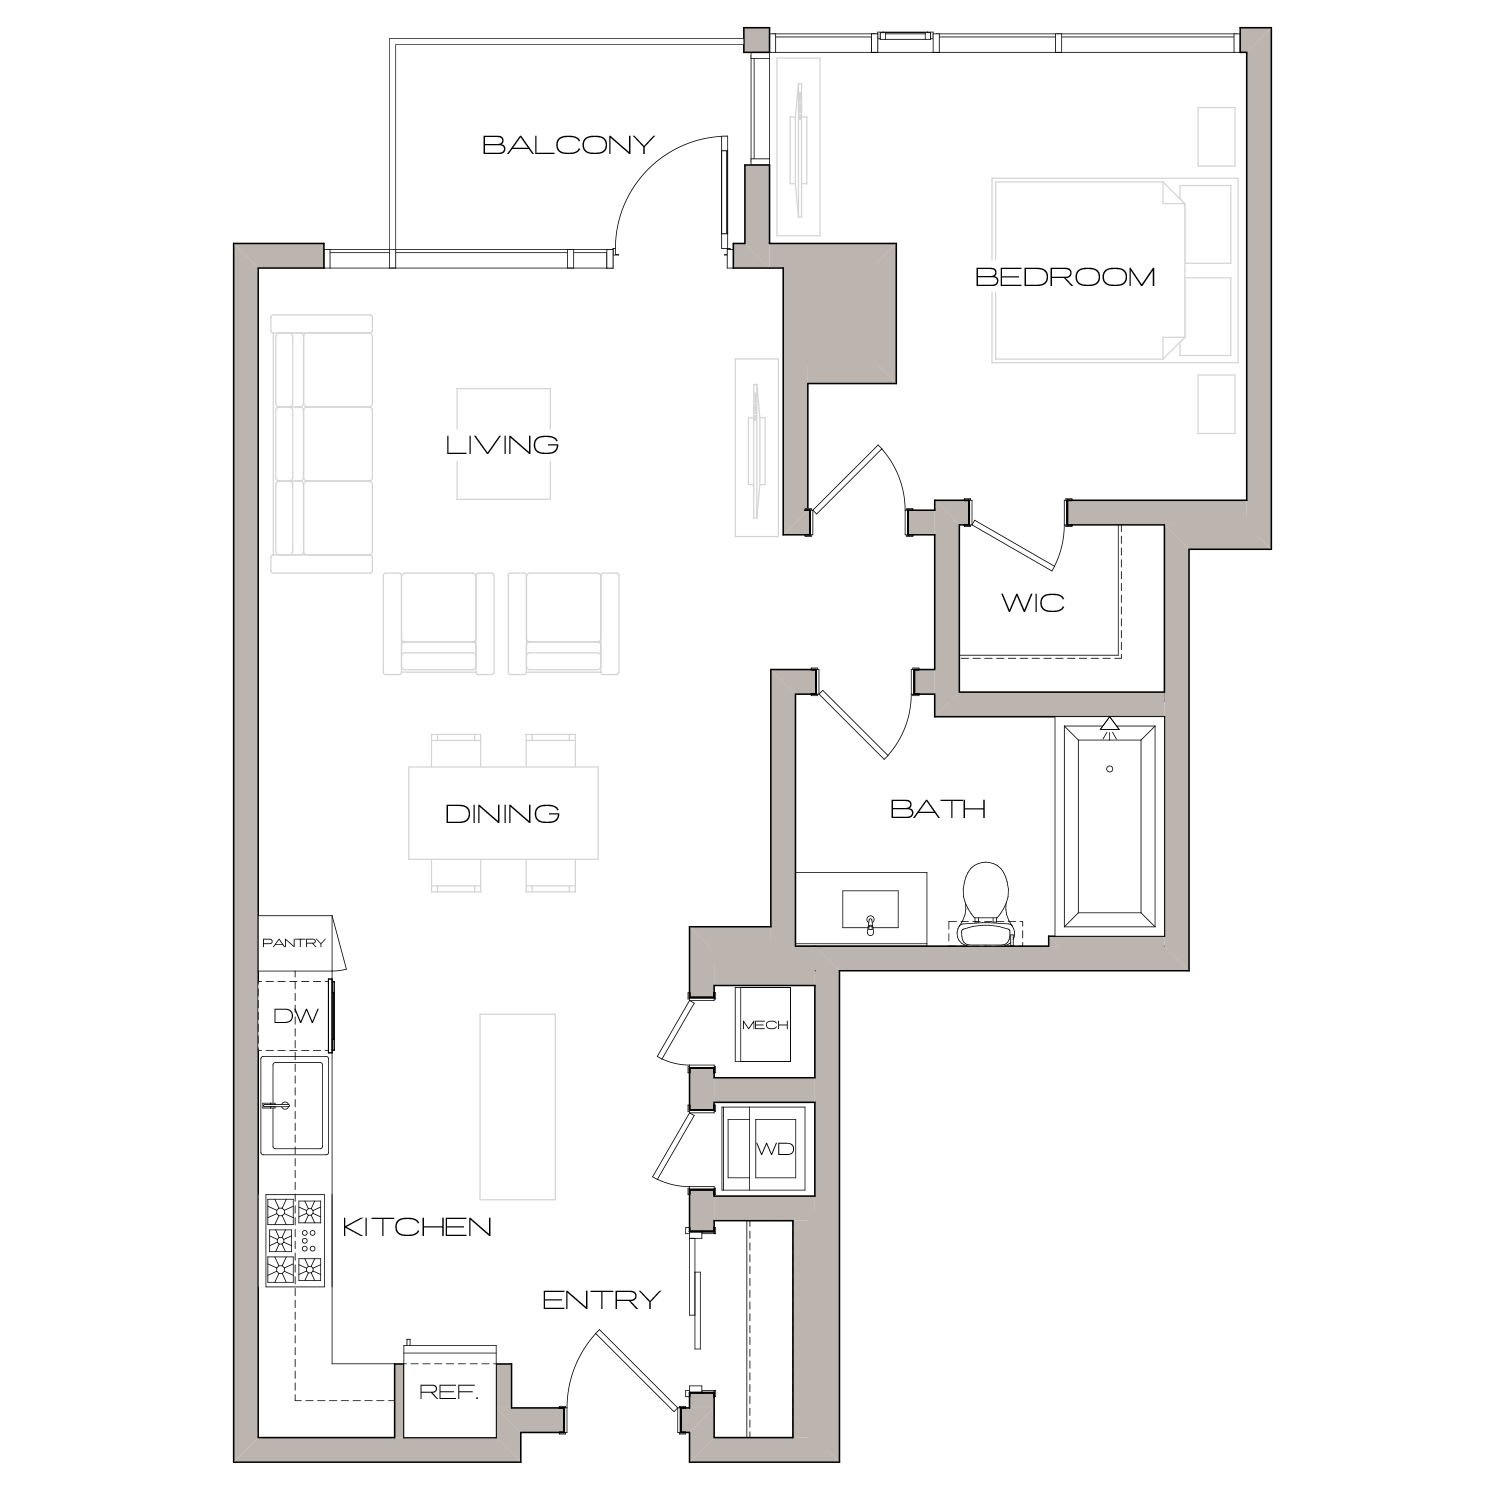 A 4 A floor plan diagram. One bedroom, one bathroom, an open kitchen and living area, a balcony, and a washer dryer.